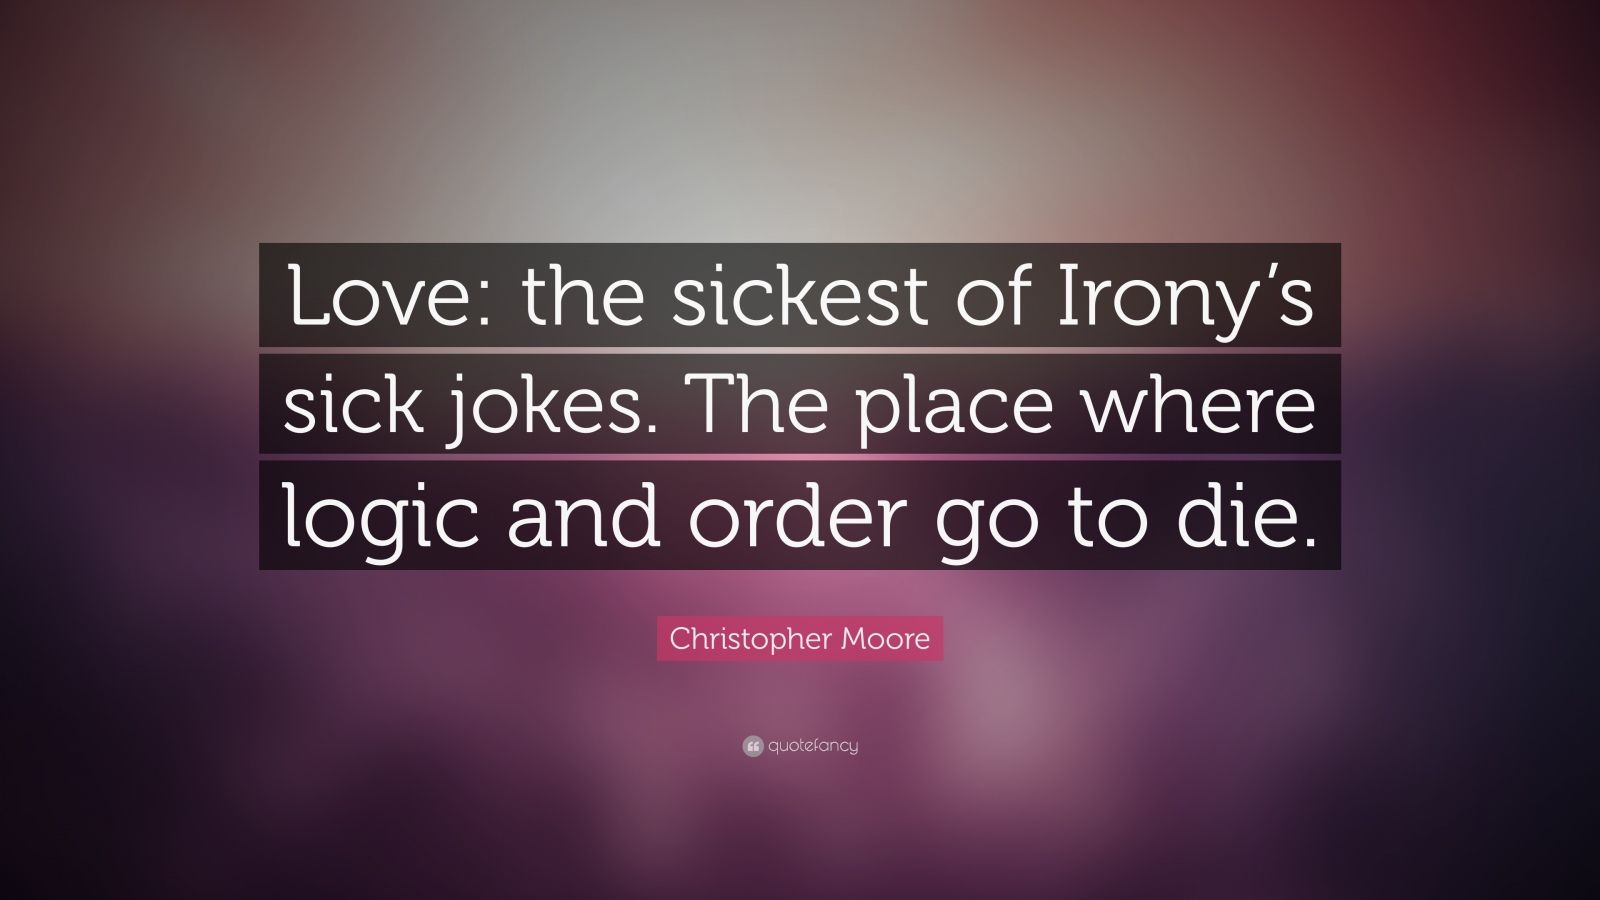 """Christopher Moore Quote: """"Love: the sickest of Irony's sick jokes.  The place where logic and order go to die."""""""